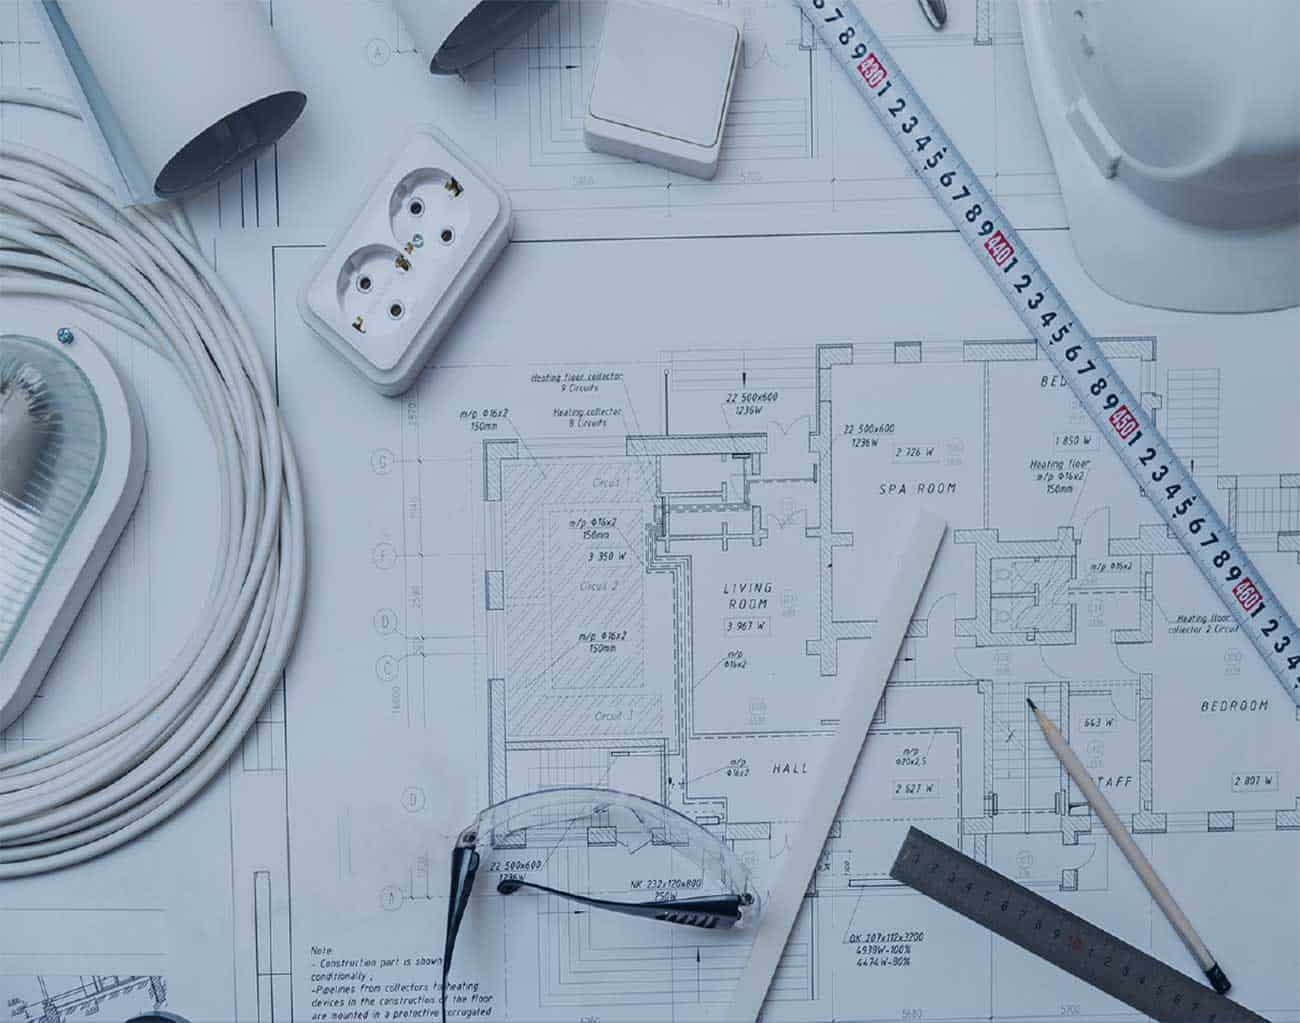 Electric Services Lockland Oh Cullen How To Replace Aluminum Wiring In House About Us